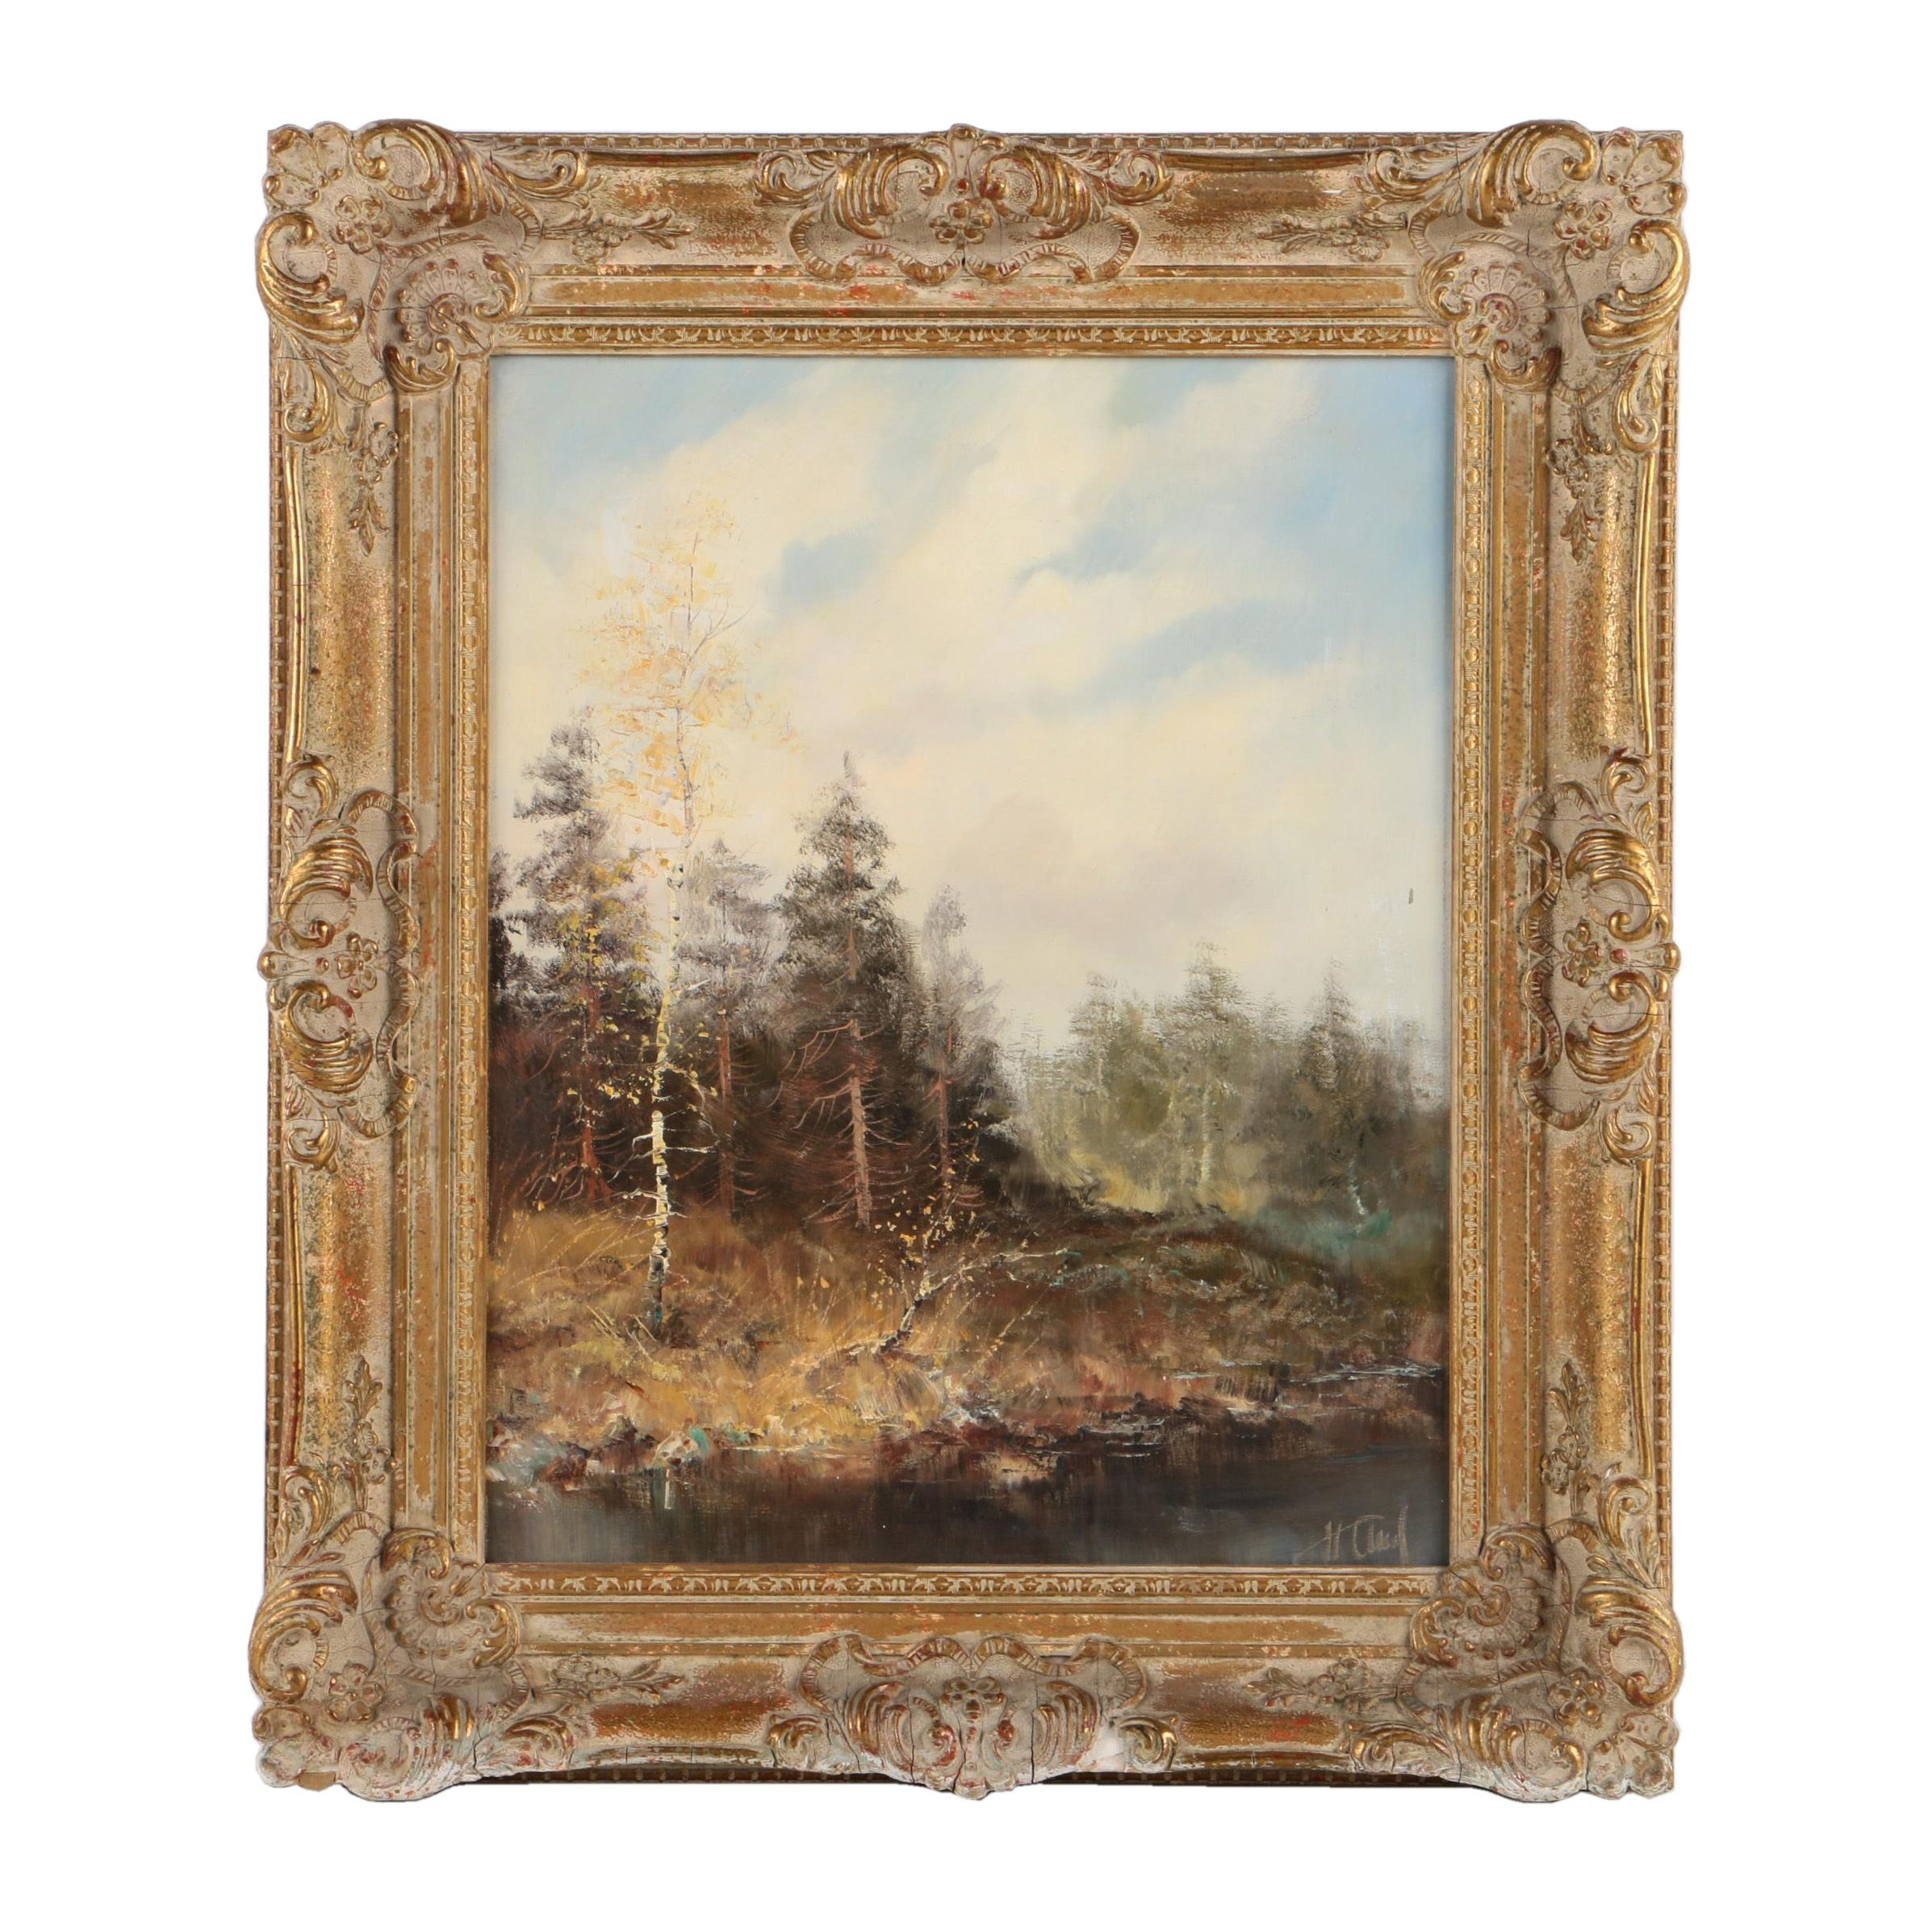 Oil Painting of a Forest Landscape